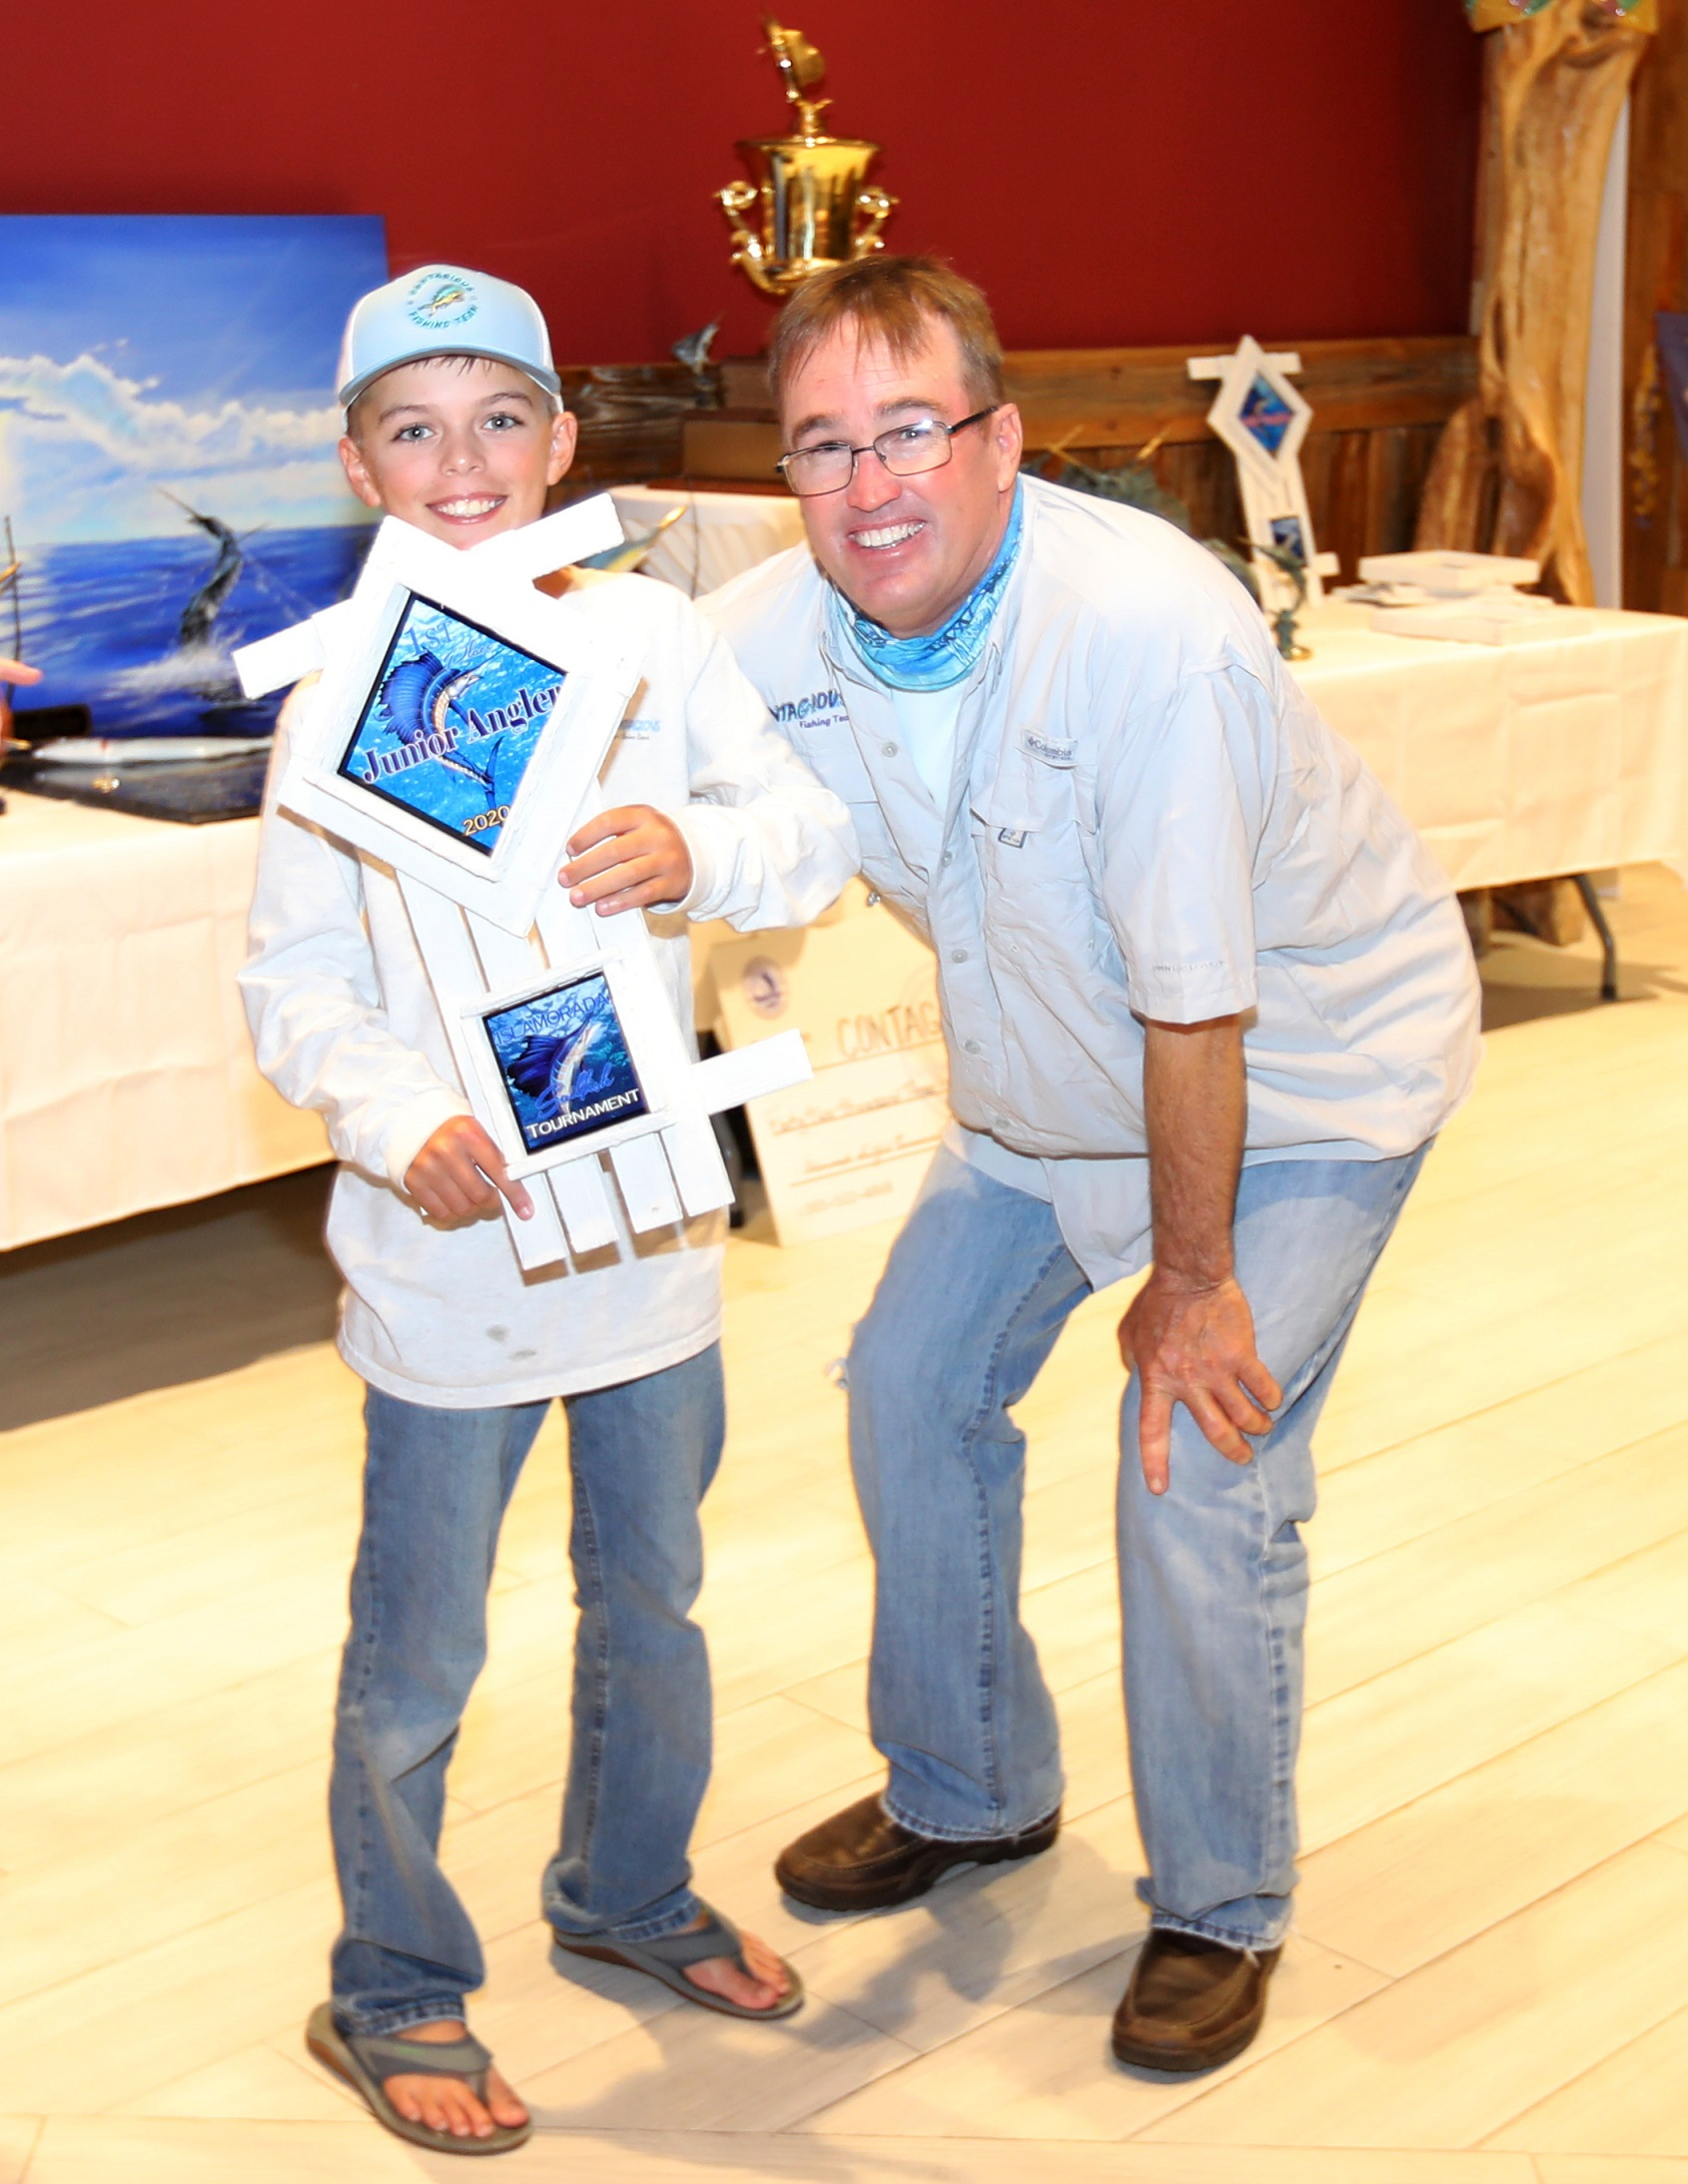 Jr. Angler Andy Cone with dad Brian Cone